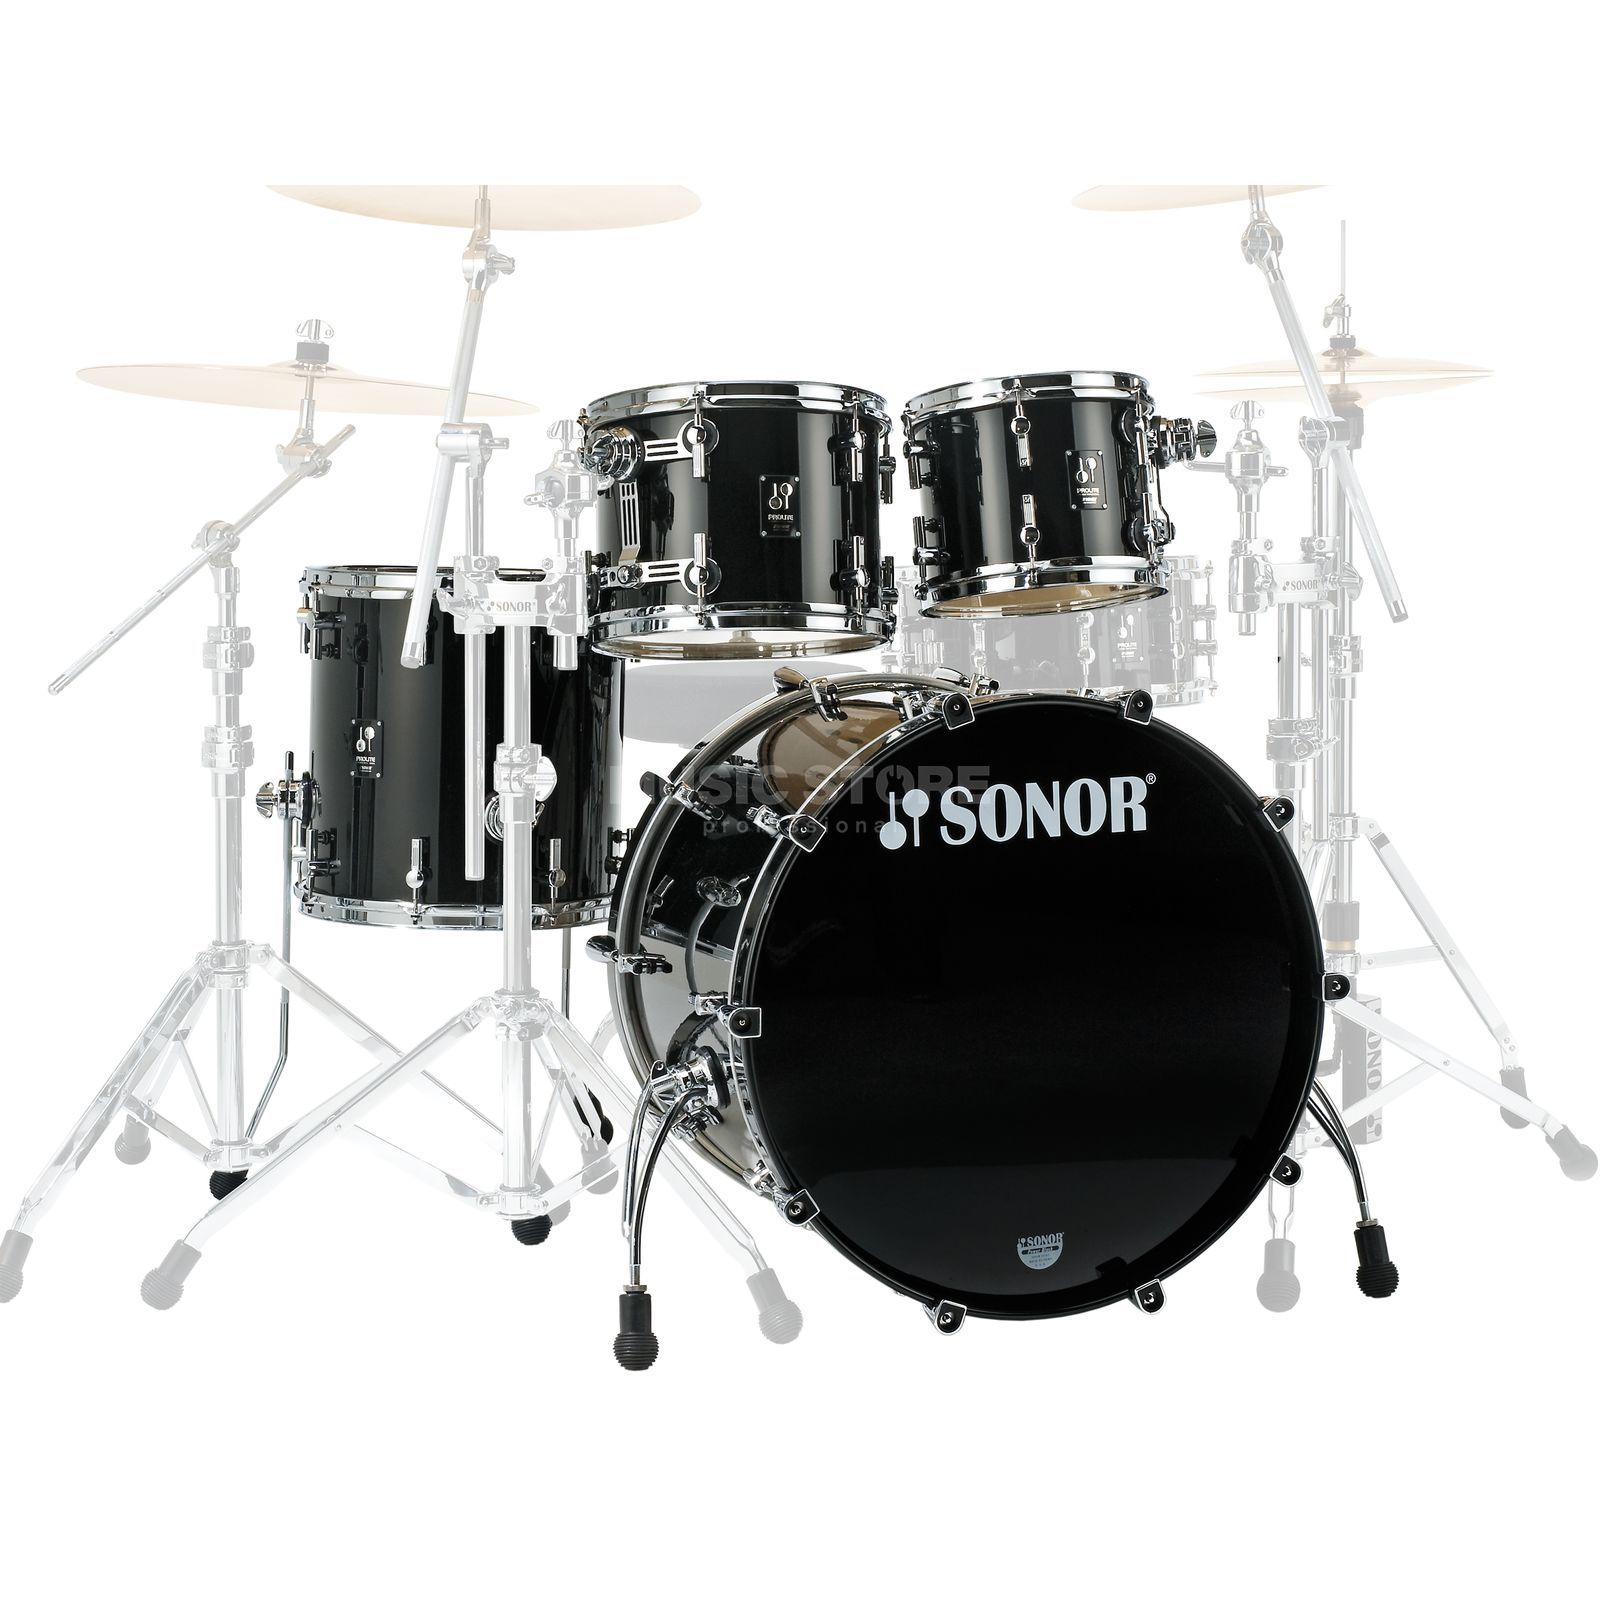 Sonor ProLite Studio 1, Brilliant Black #55 Produktbild